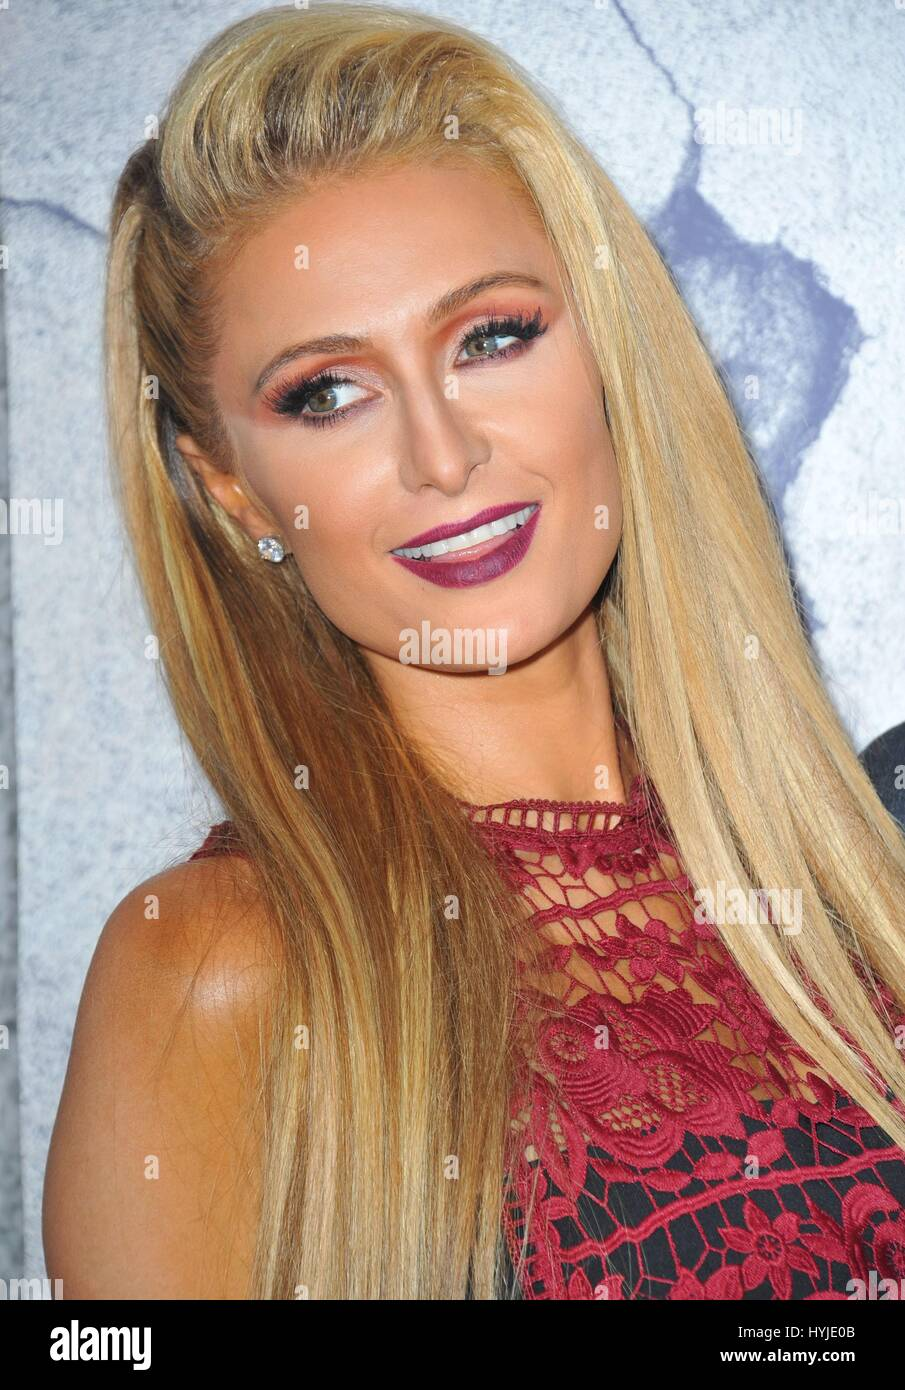 Los Angeles, CA, USA. 4. April 2017. Paris Hilton im Ankunftsbereich für die Reste Staffel 3 Premiere, Avalon Hollywood, Stockfoto